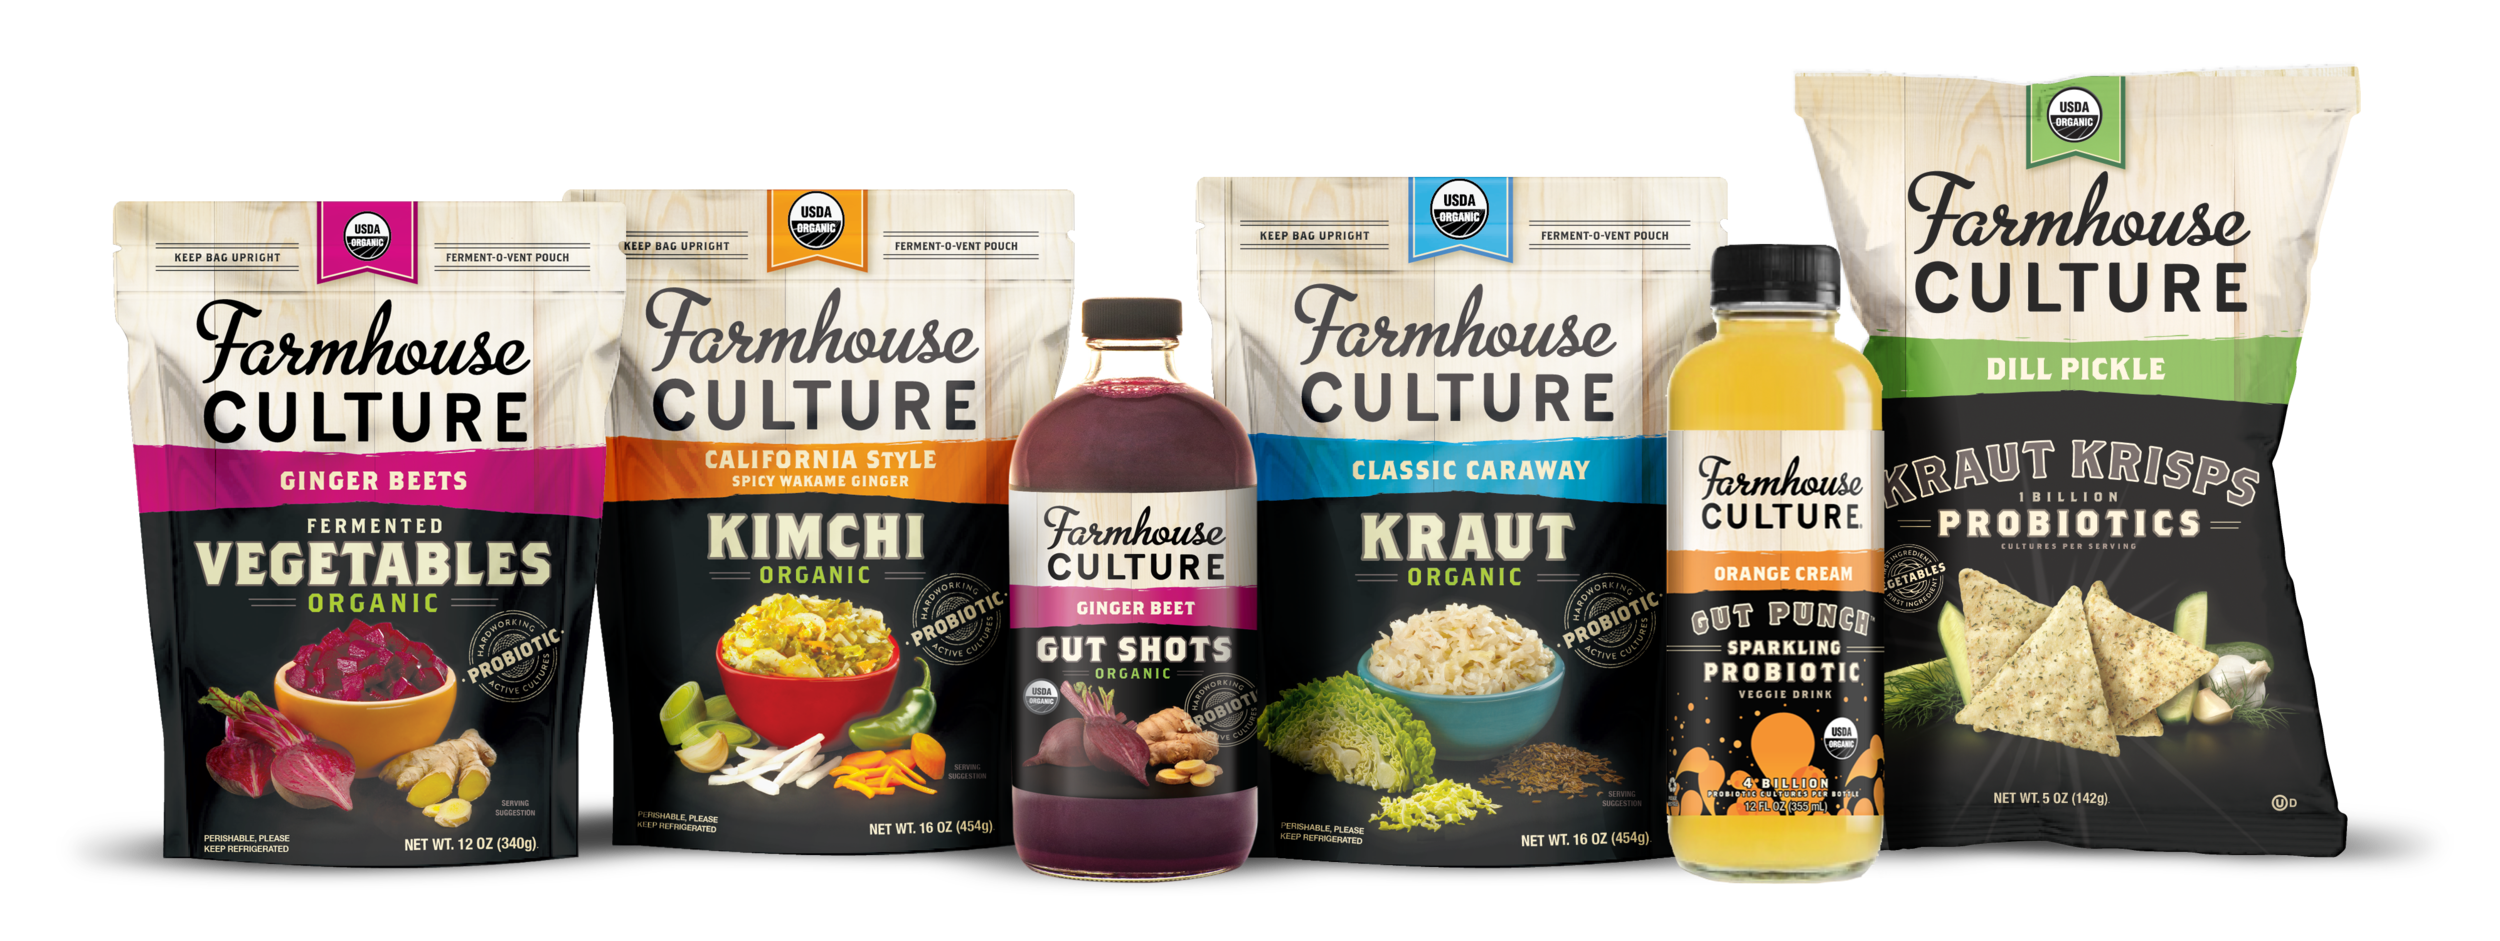 General Mills recently invested in Farmhouse Culture, a company which produces a variety of probiotic-rich foods. Photo credit: Farmhouse Culture